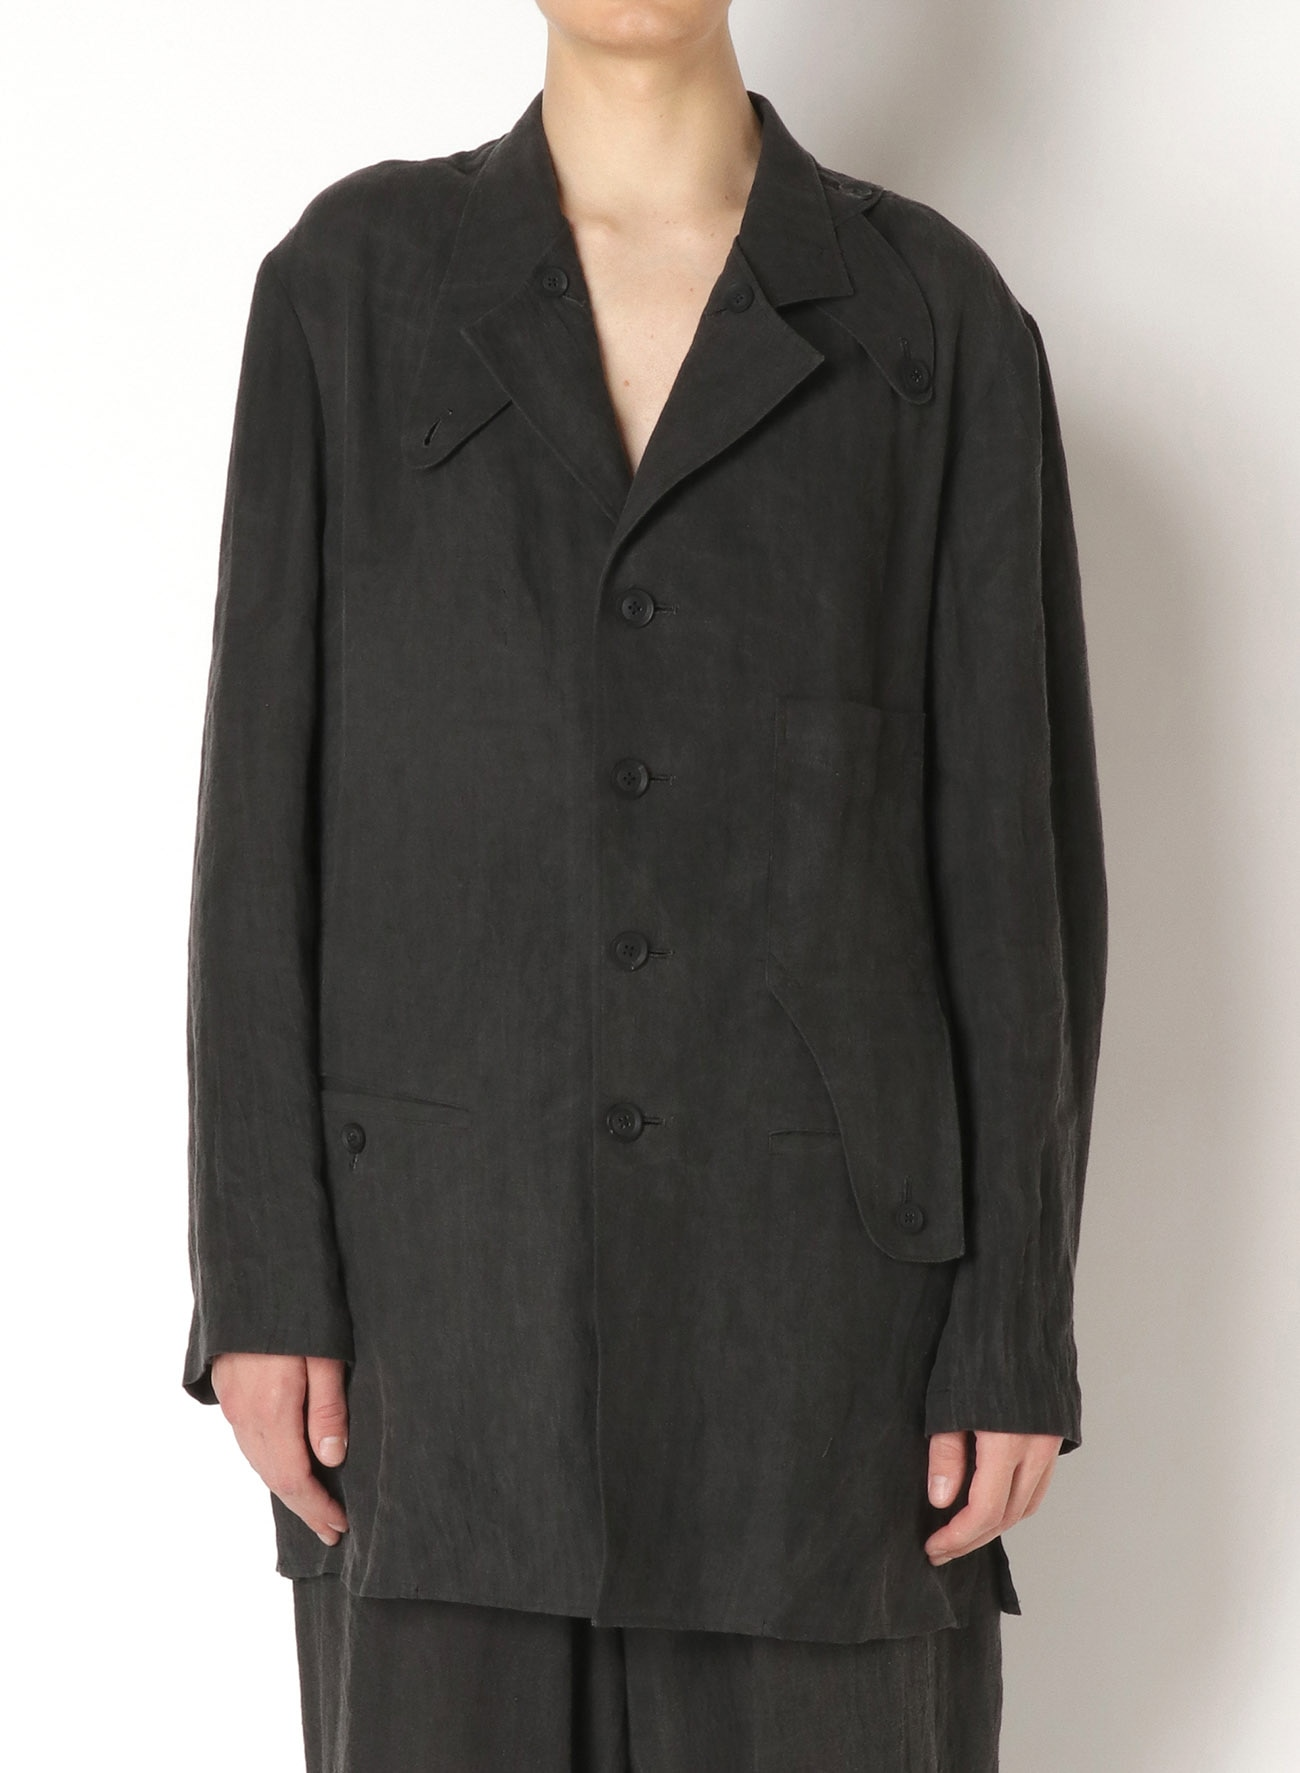 LINEN INK DARK LEFT BUTTON OPEN LINEN JACKET